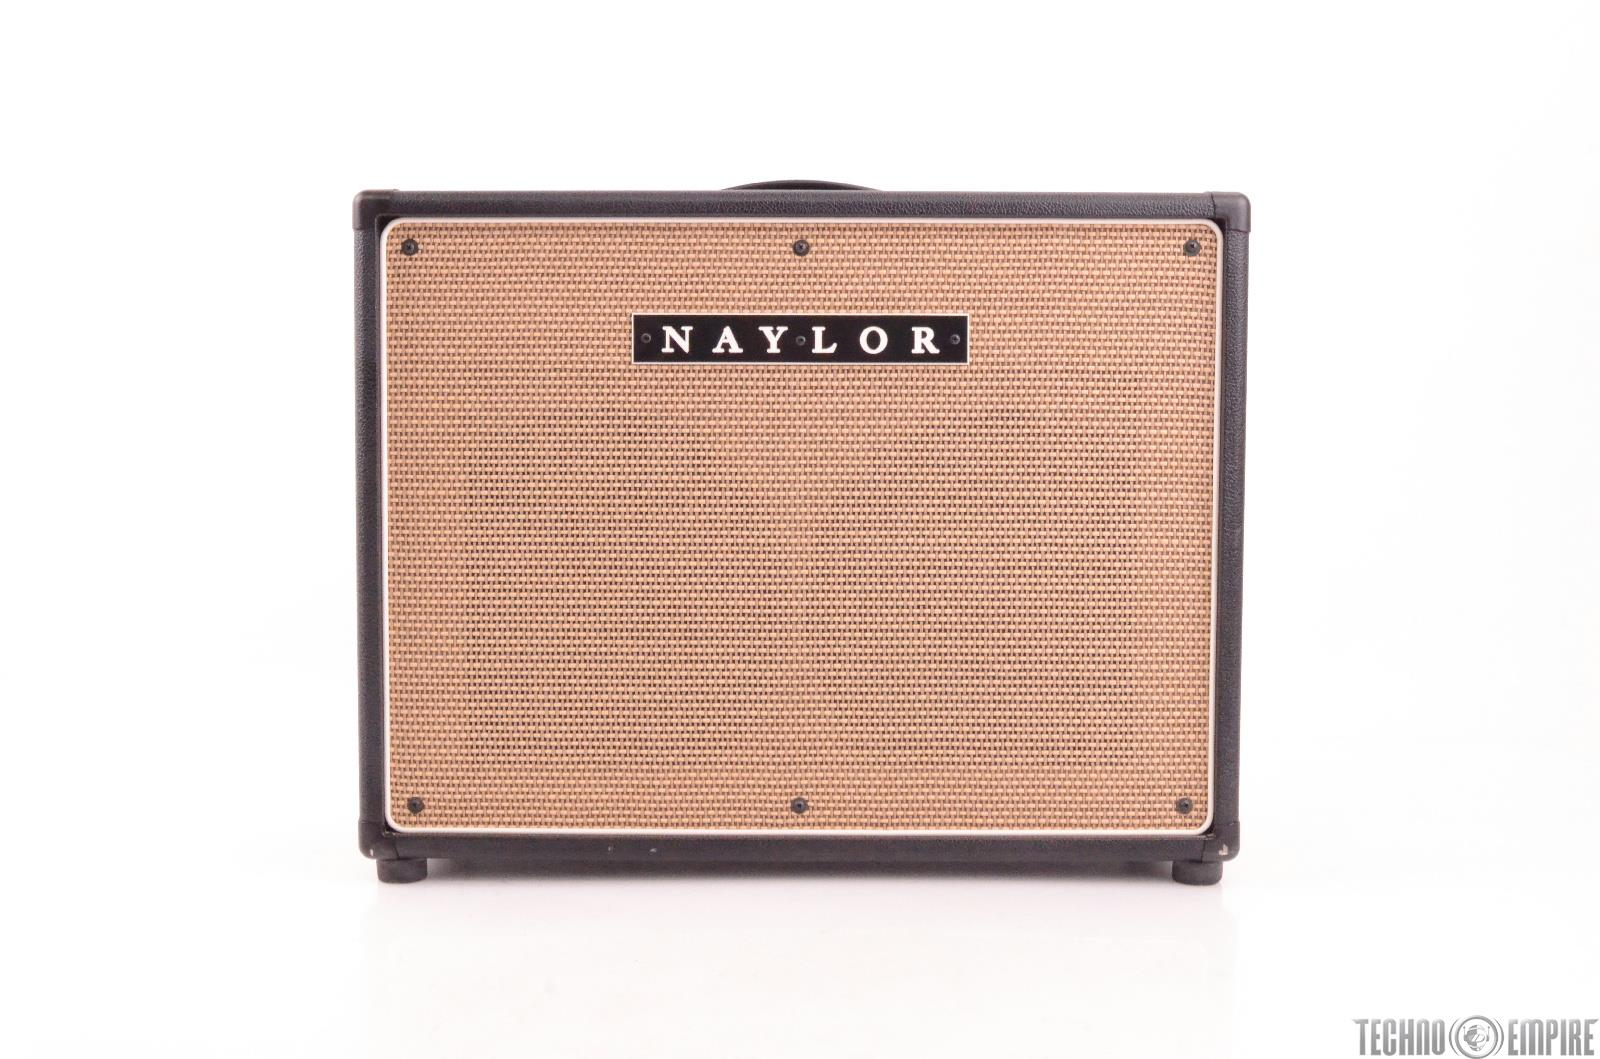 Naylor Electra-Verb 60 EV60 2x12 Combo Guitar Tube Amplifier Amp #27434